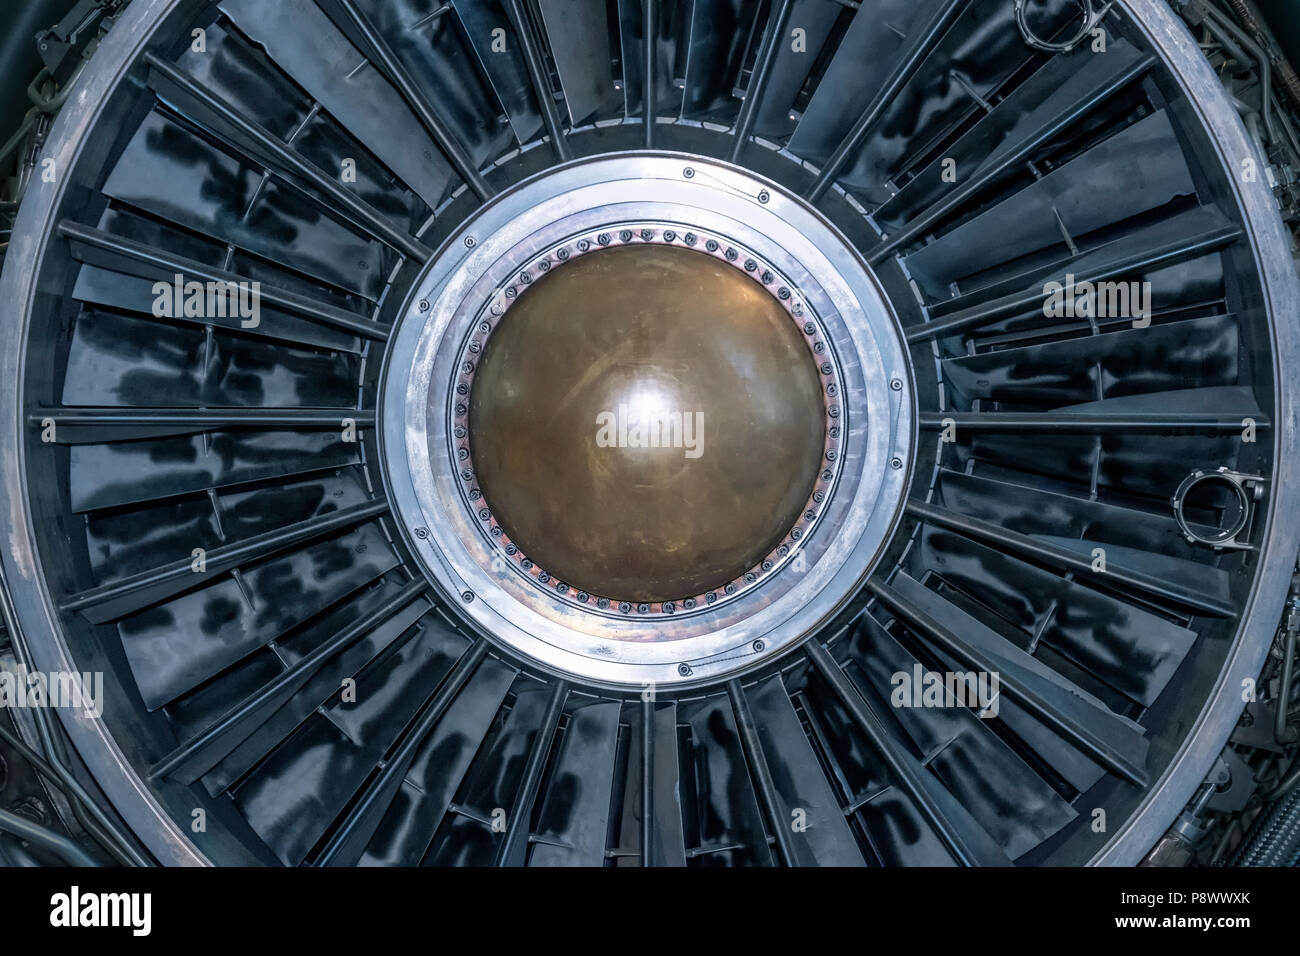 Inside of a powerful aircraft jet engine - Stock Image